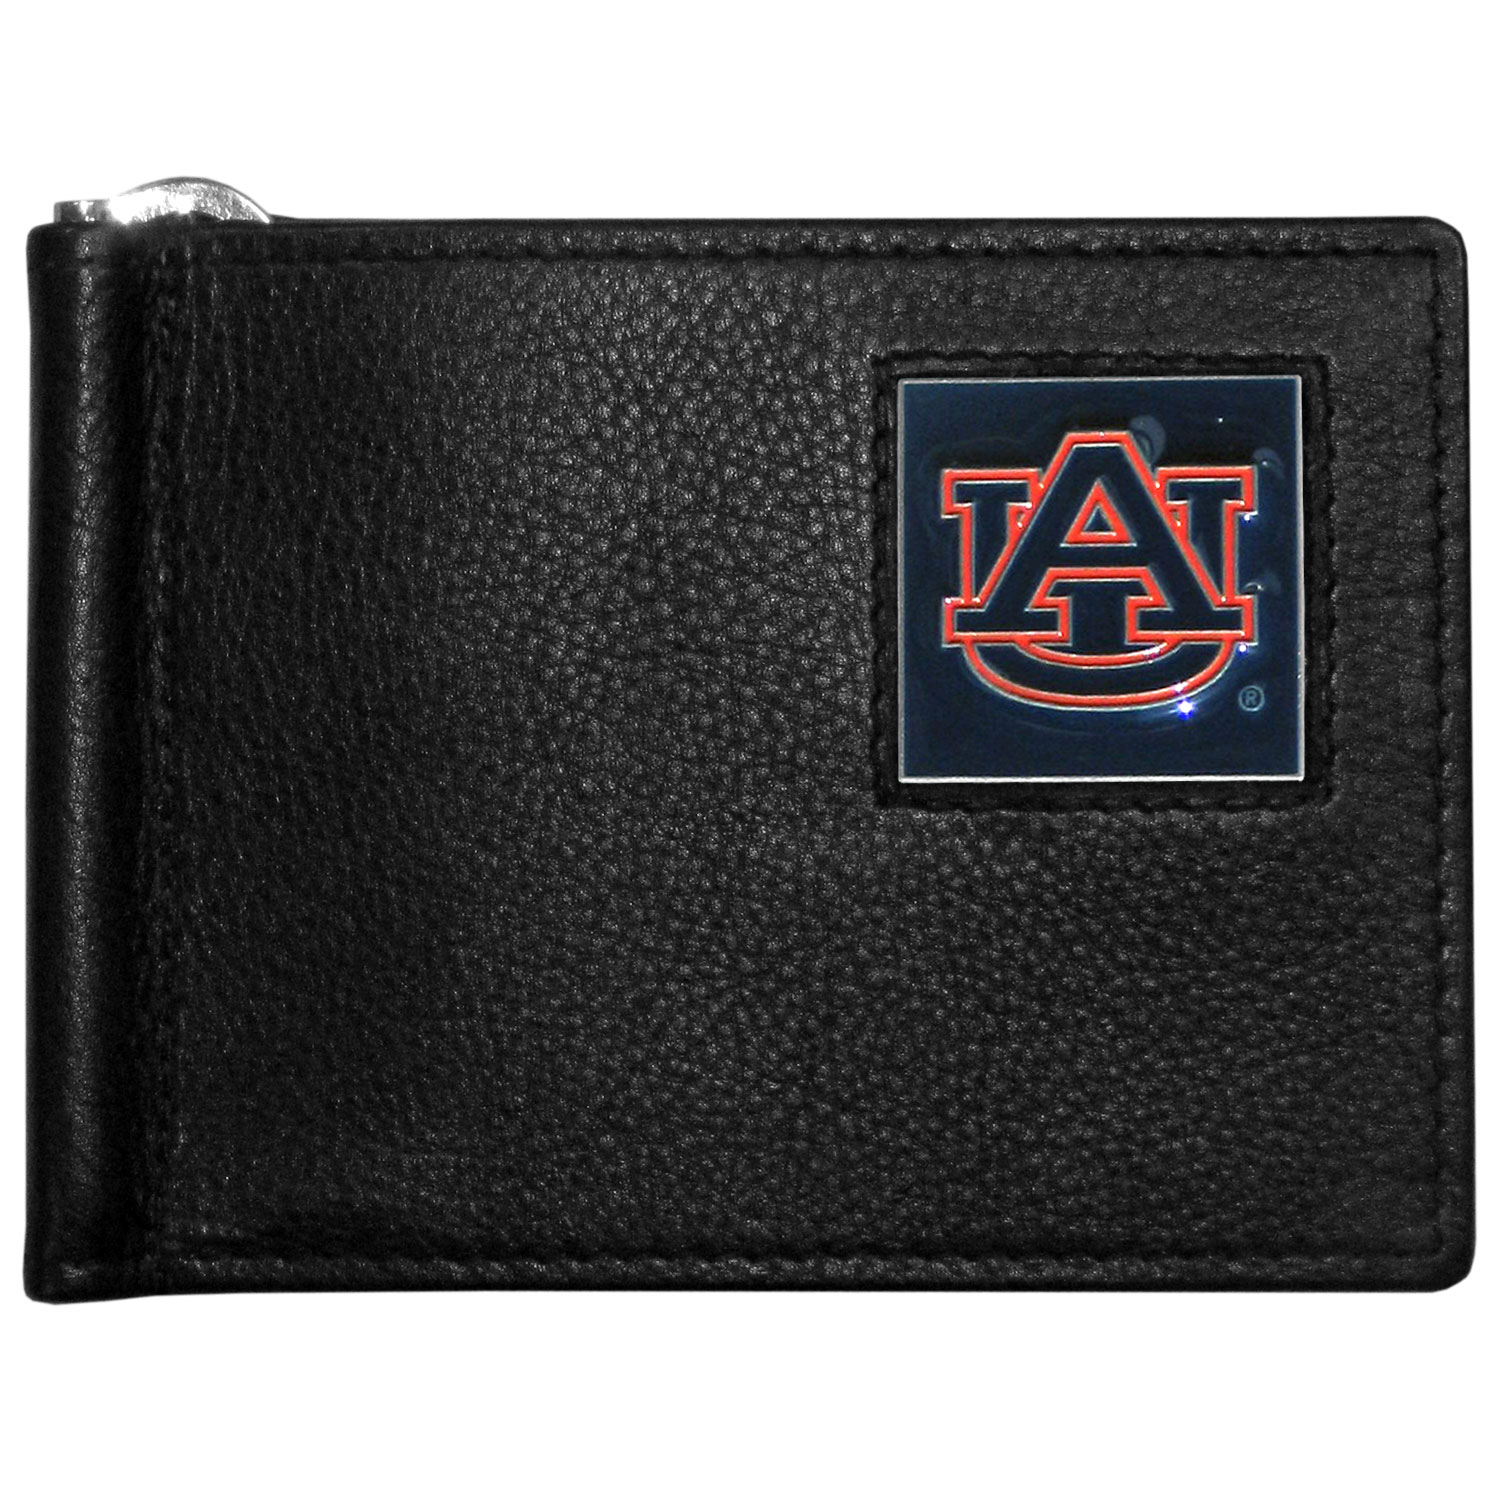 Auburn Tigers Leather Bill Clip Wallet - This cool new style wallet features an inner, metal bill clip that lips up for easy access. The super slim wallet holds tons of stuff with ample pockets, credit card slots & windowed ID slot. The wallet is made of genuine fine grain leather and it finished with a metal Auburn Tigers emblem. The wallet is shipped in gift box packaging.